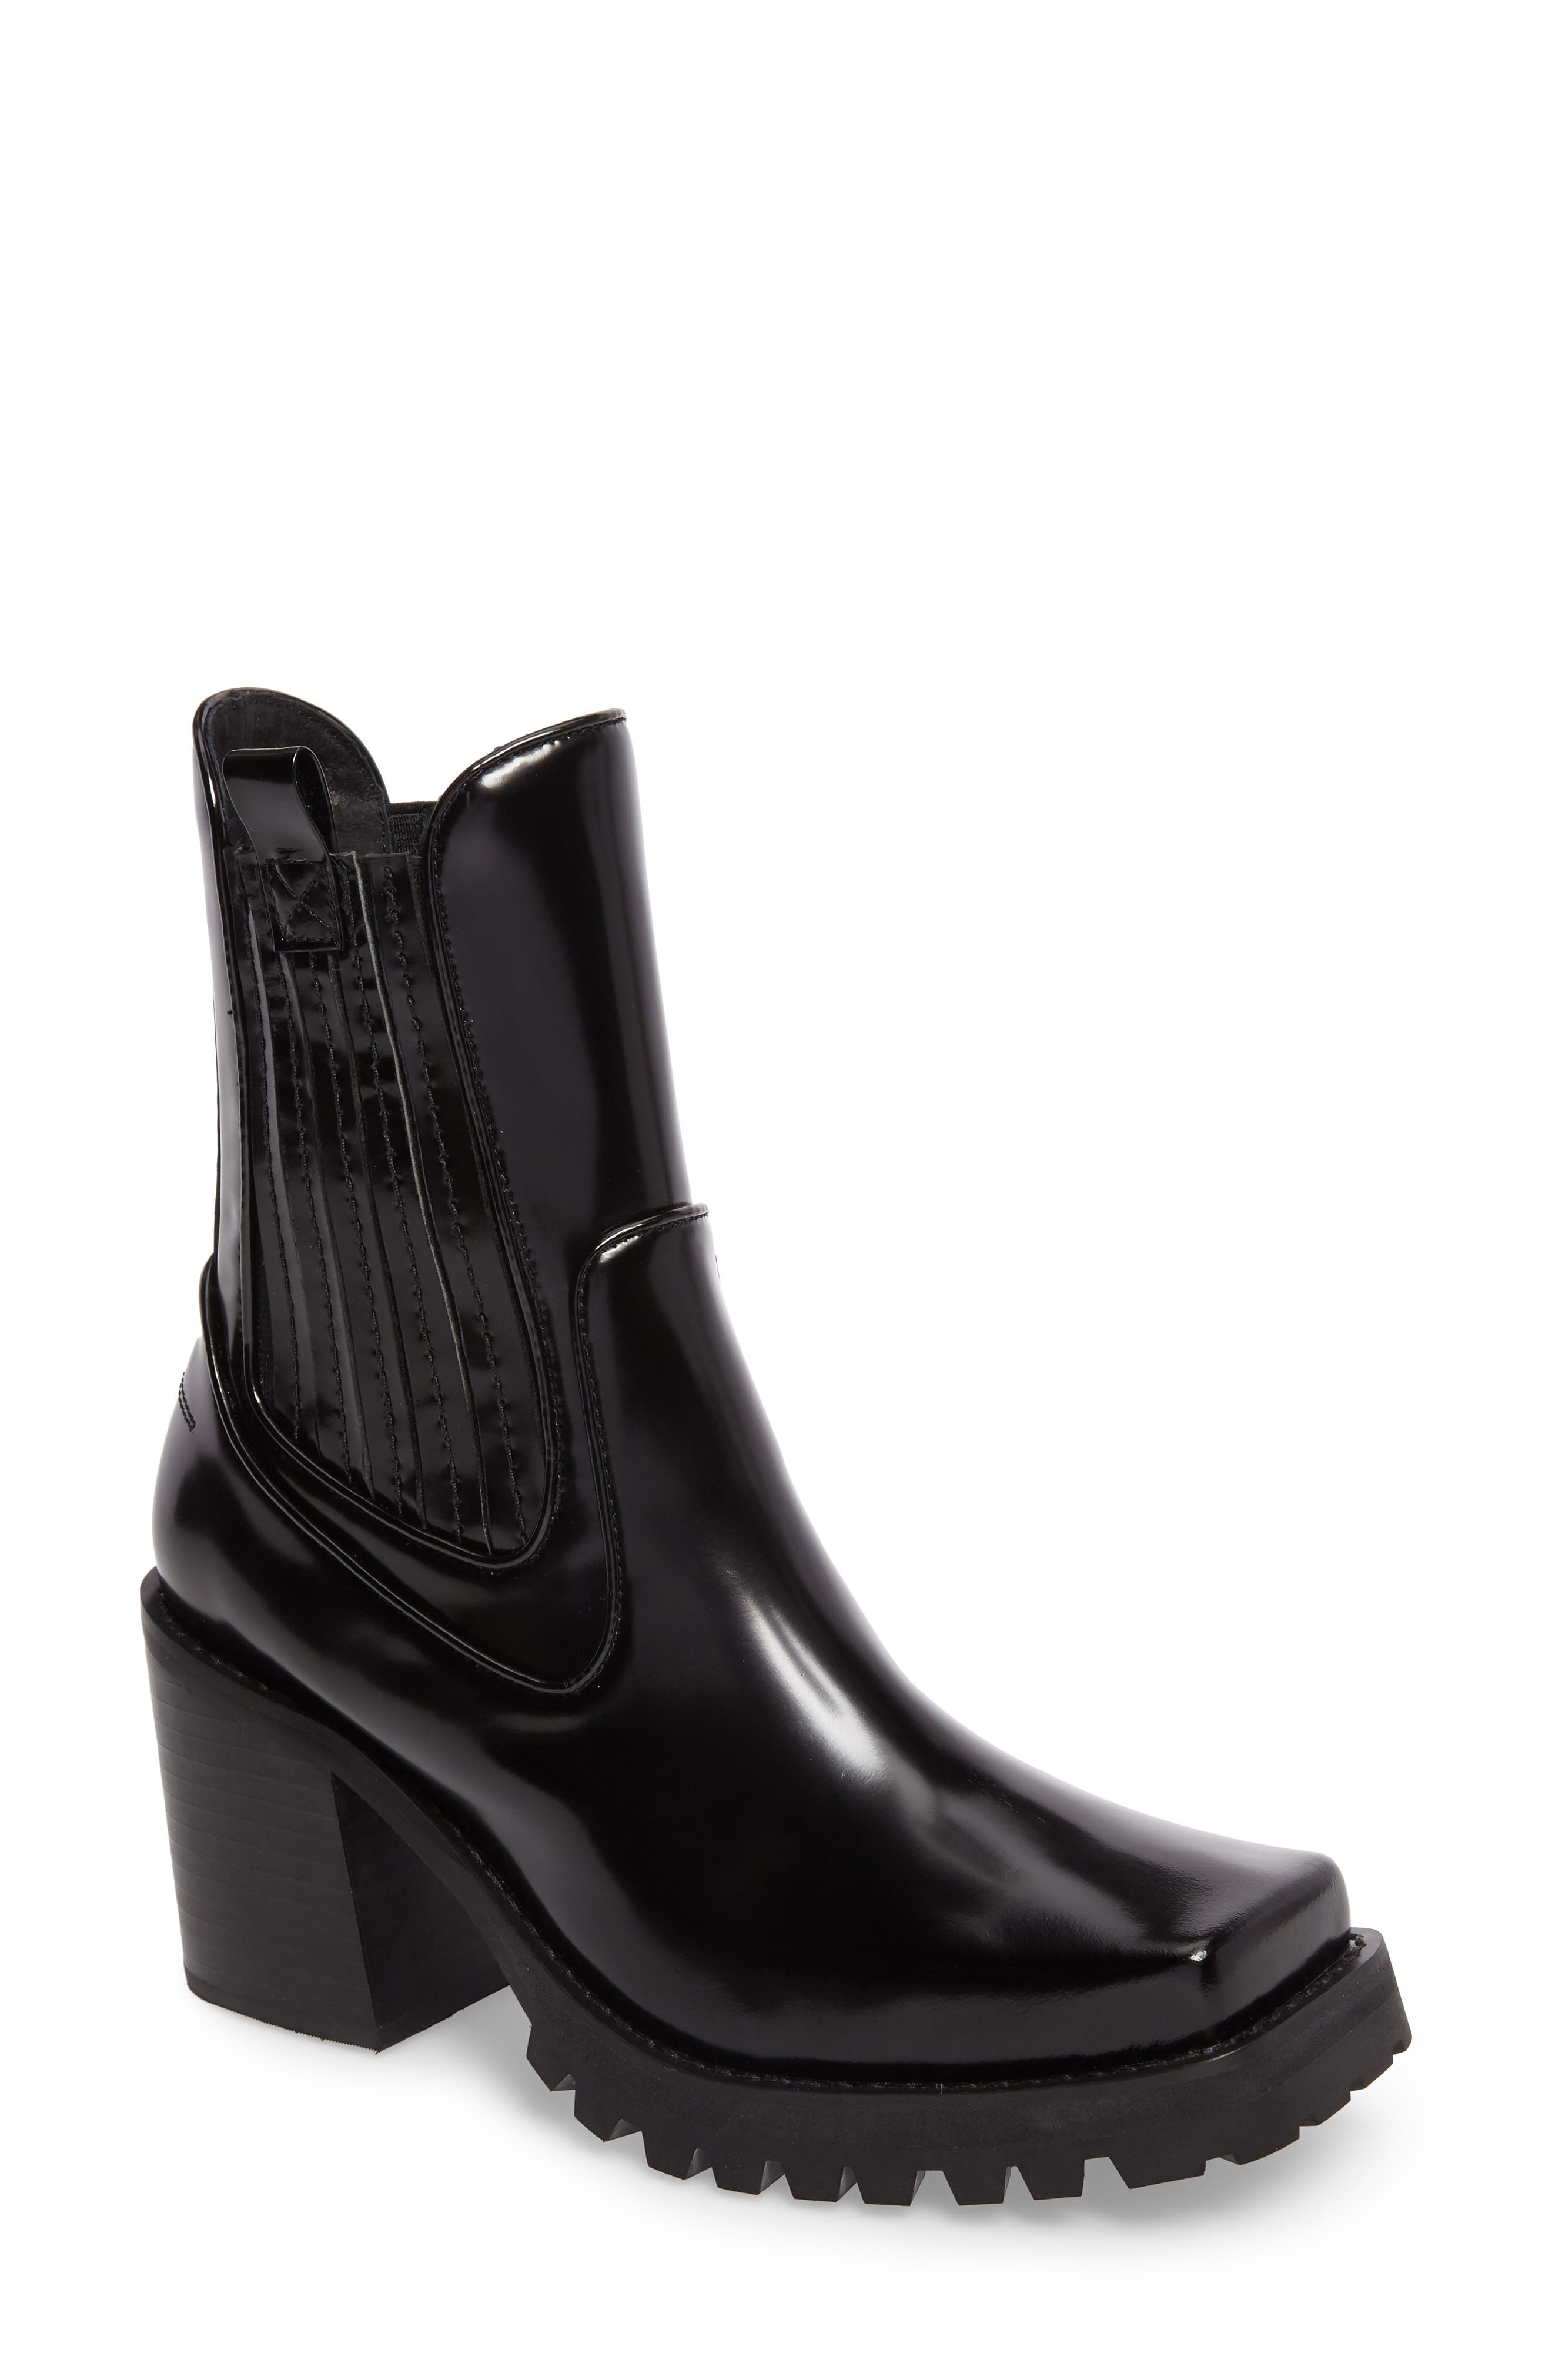 Alternate Image 1 Selected - Jeffrey Campbell Elkins Boot (Women)